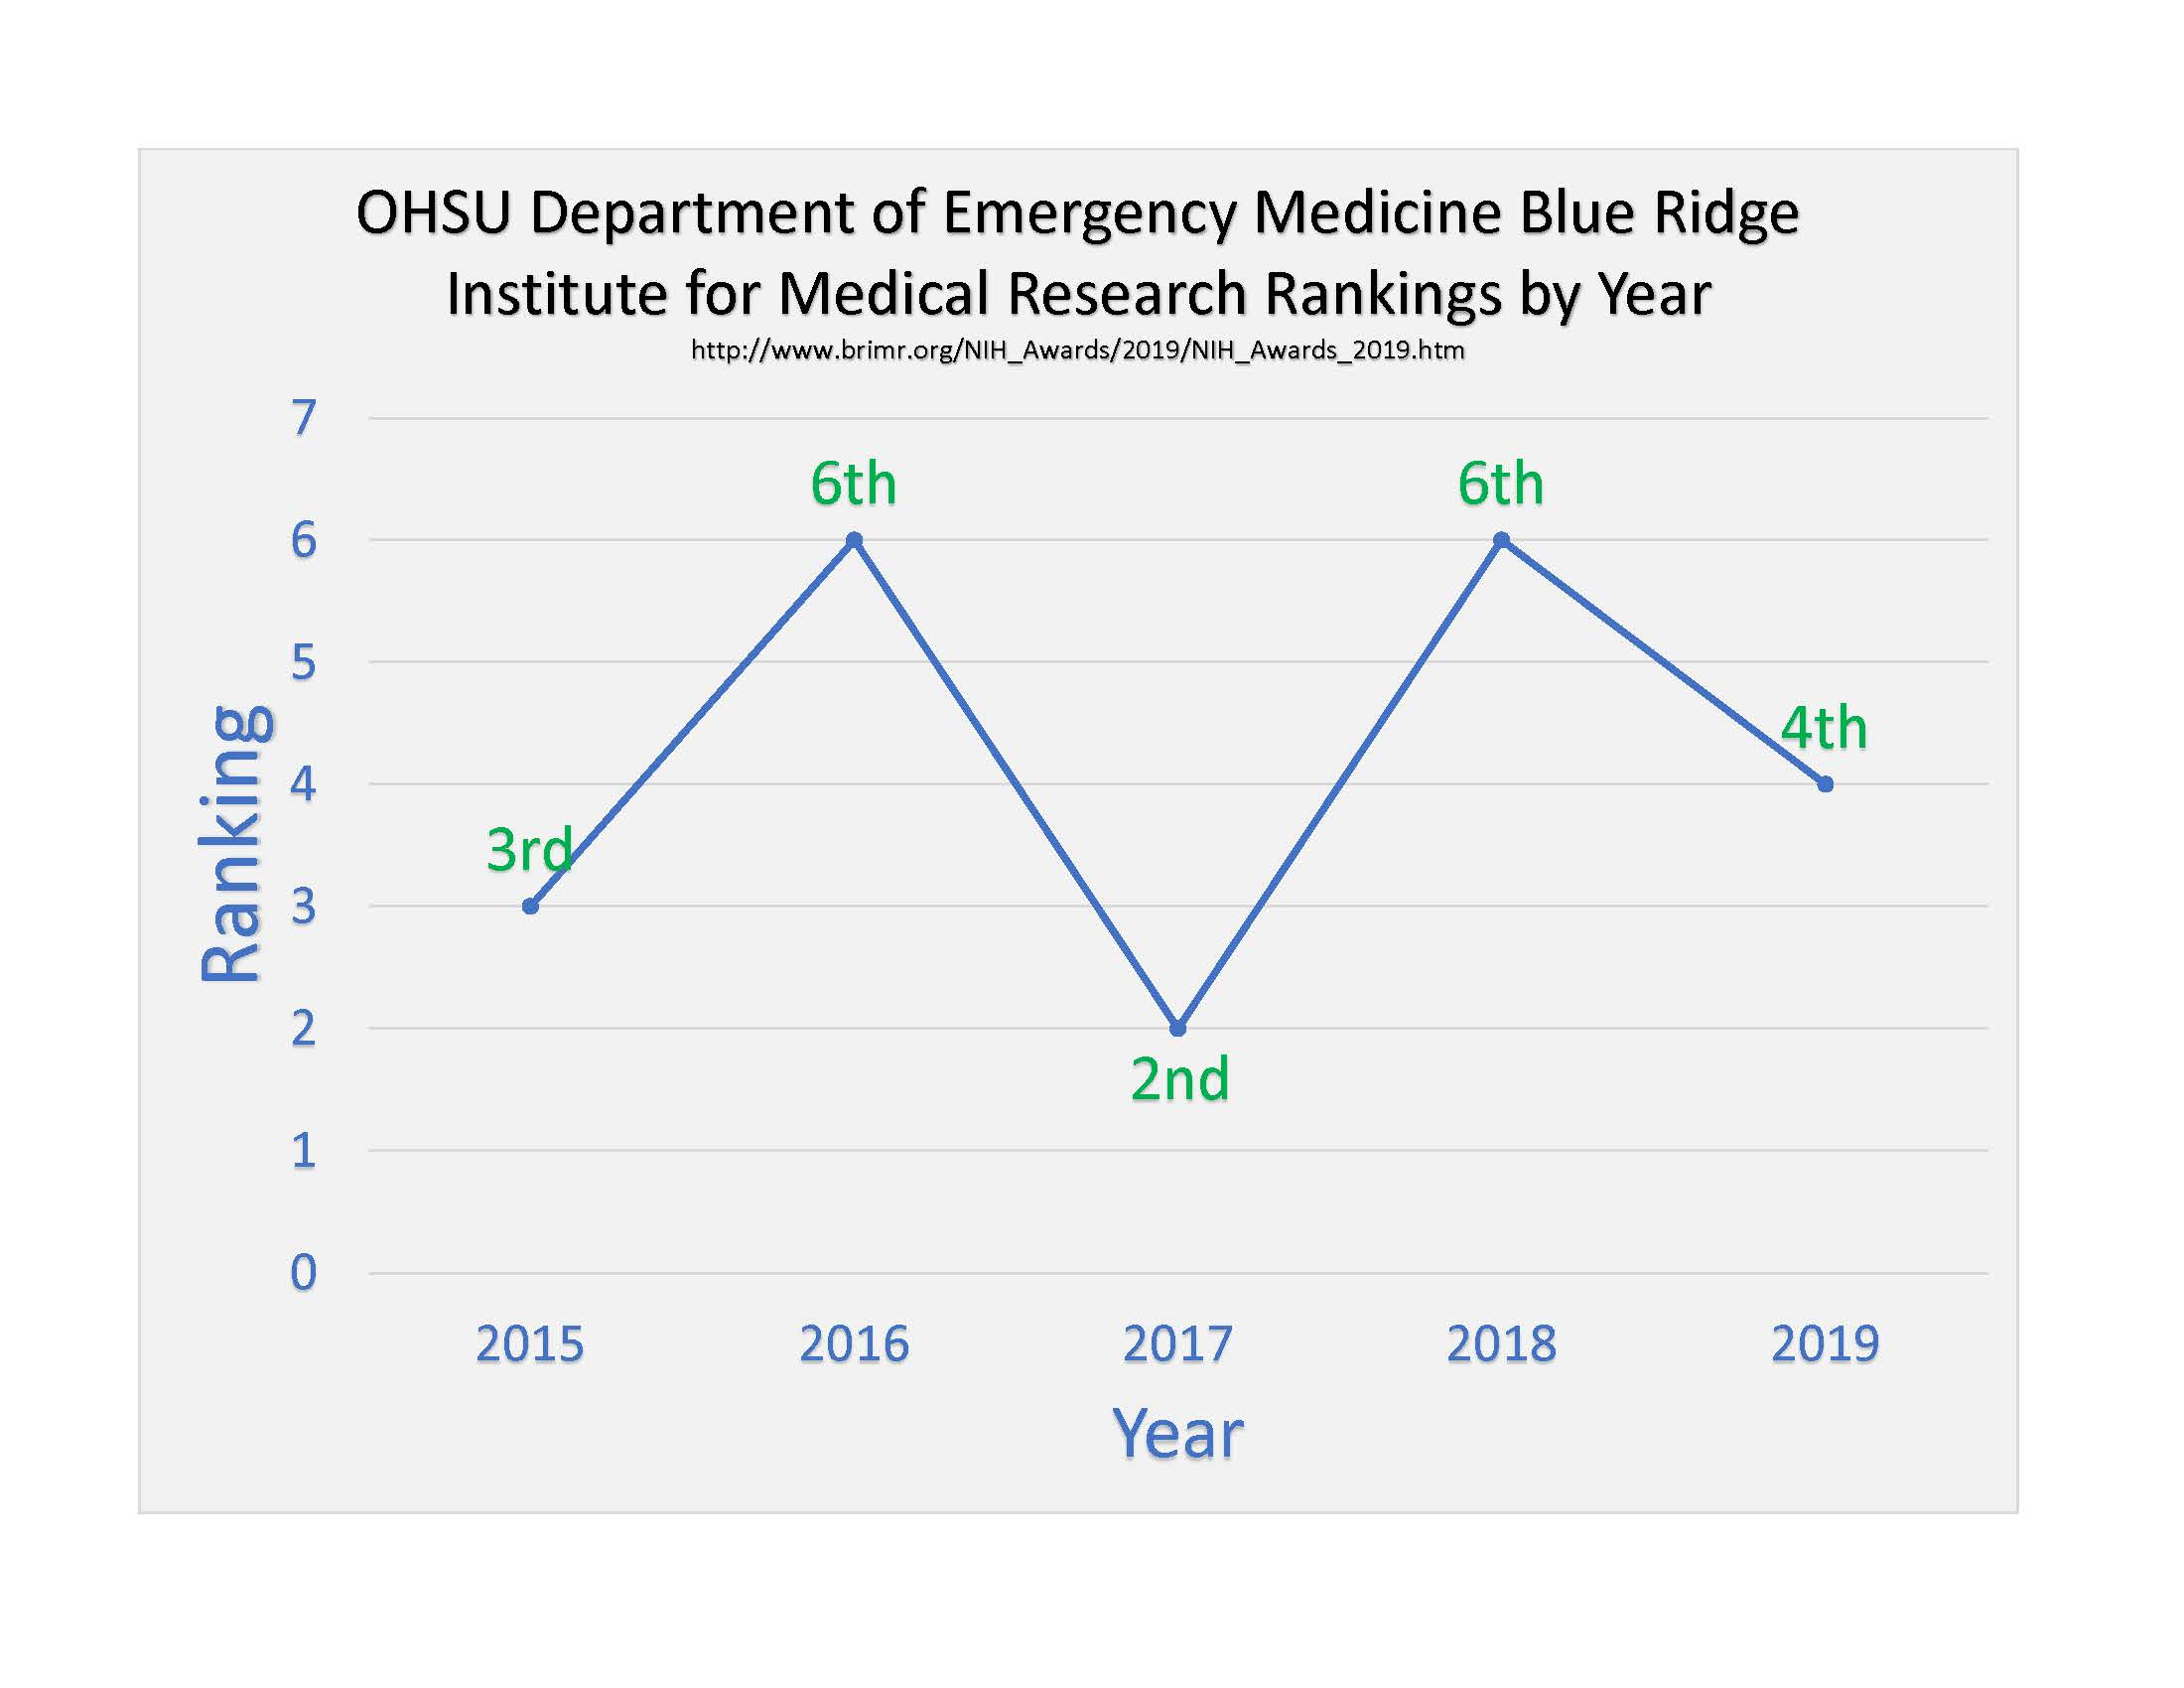 The OHSU Department of Emergency Medicine has ranked in the top 6 EM departments for the past 5 years. In 2019, they were ranked 4th.